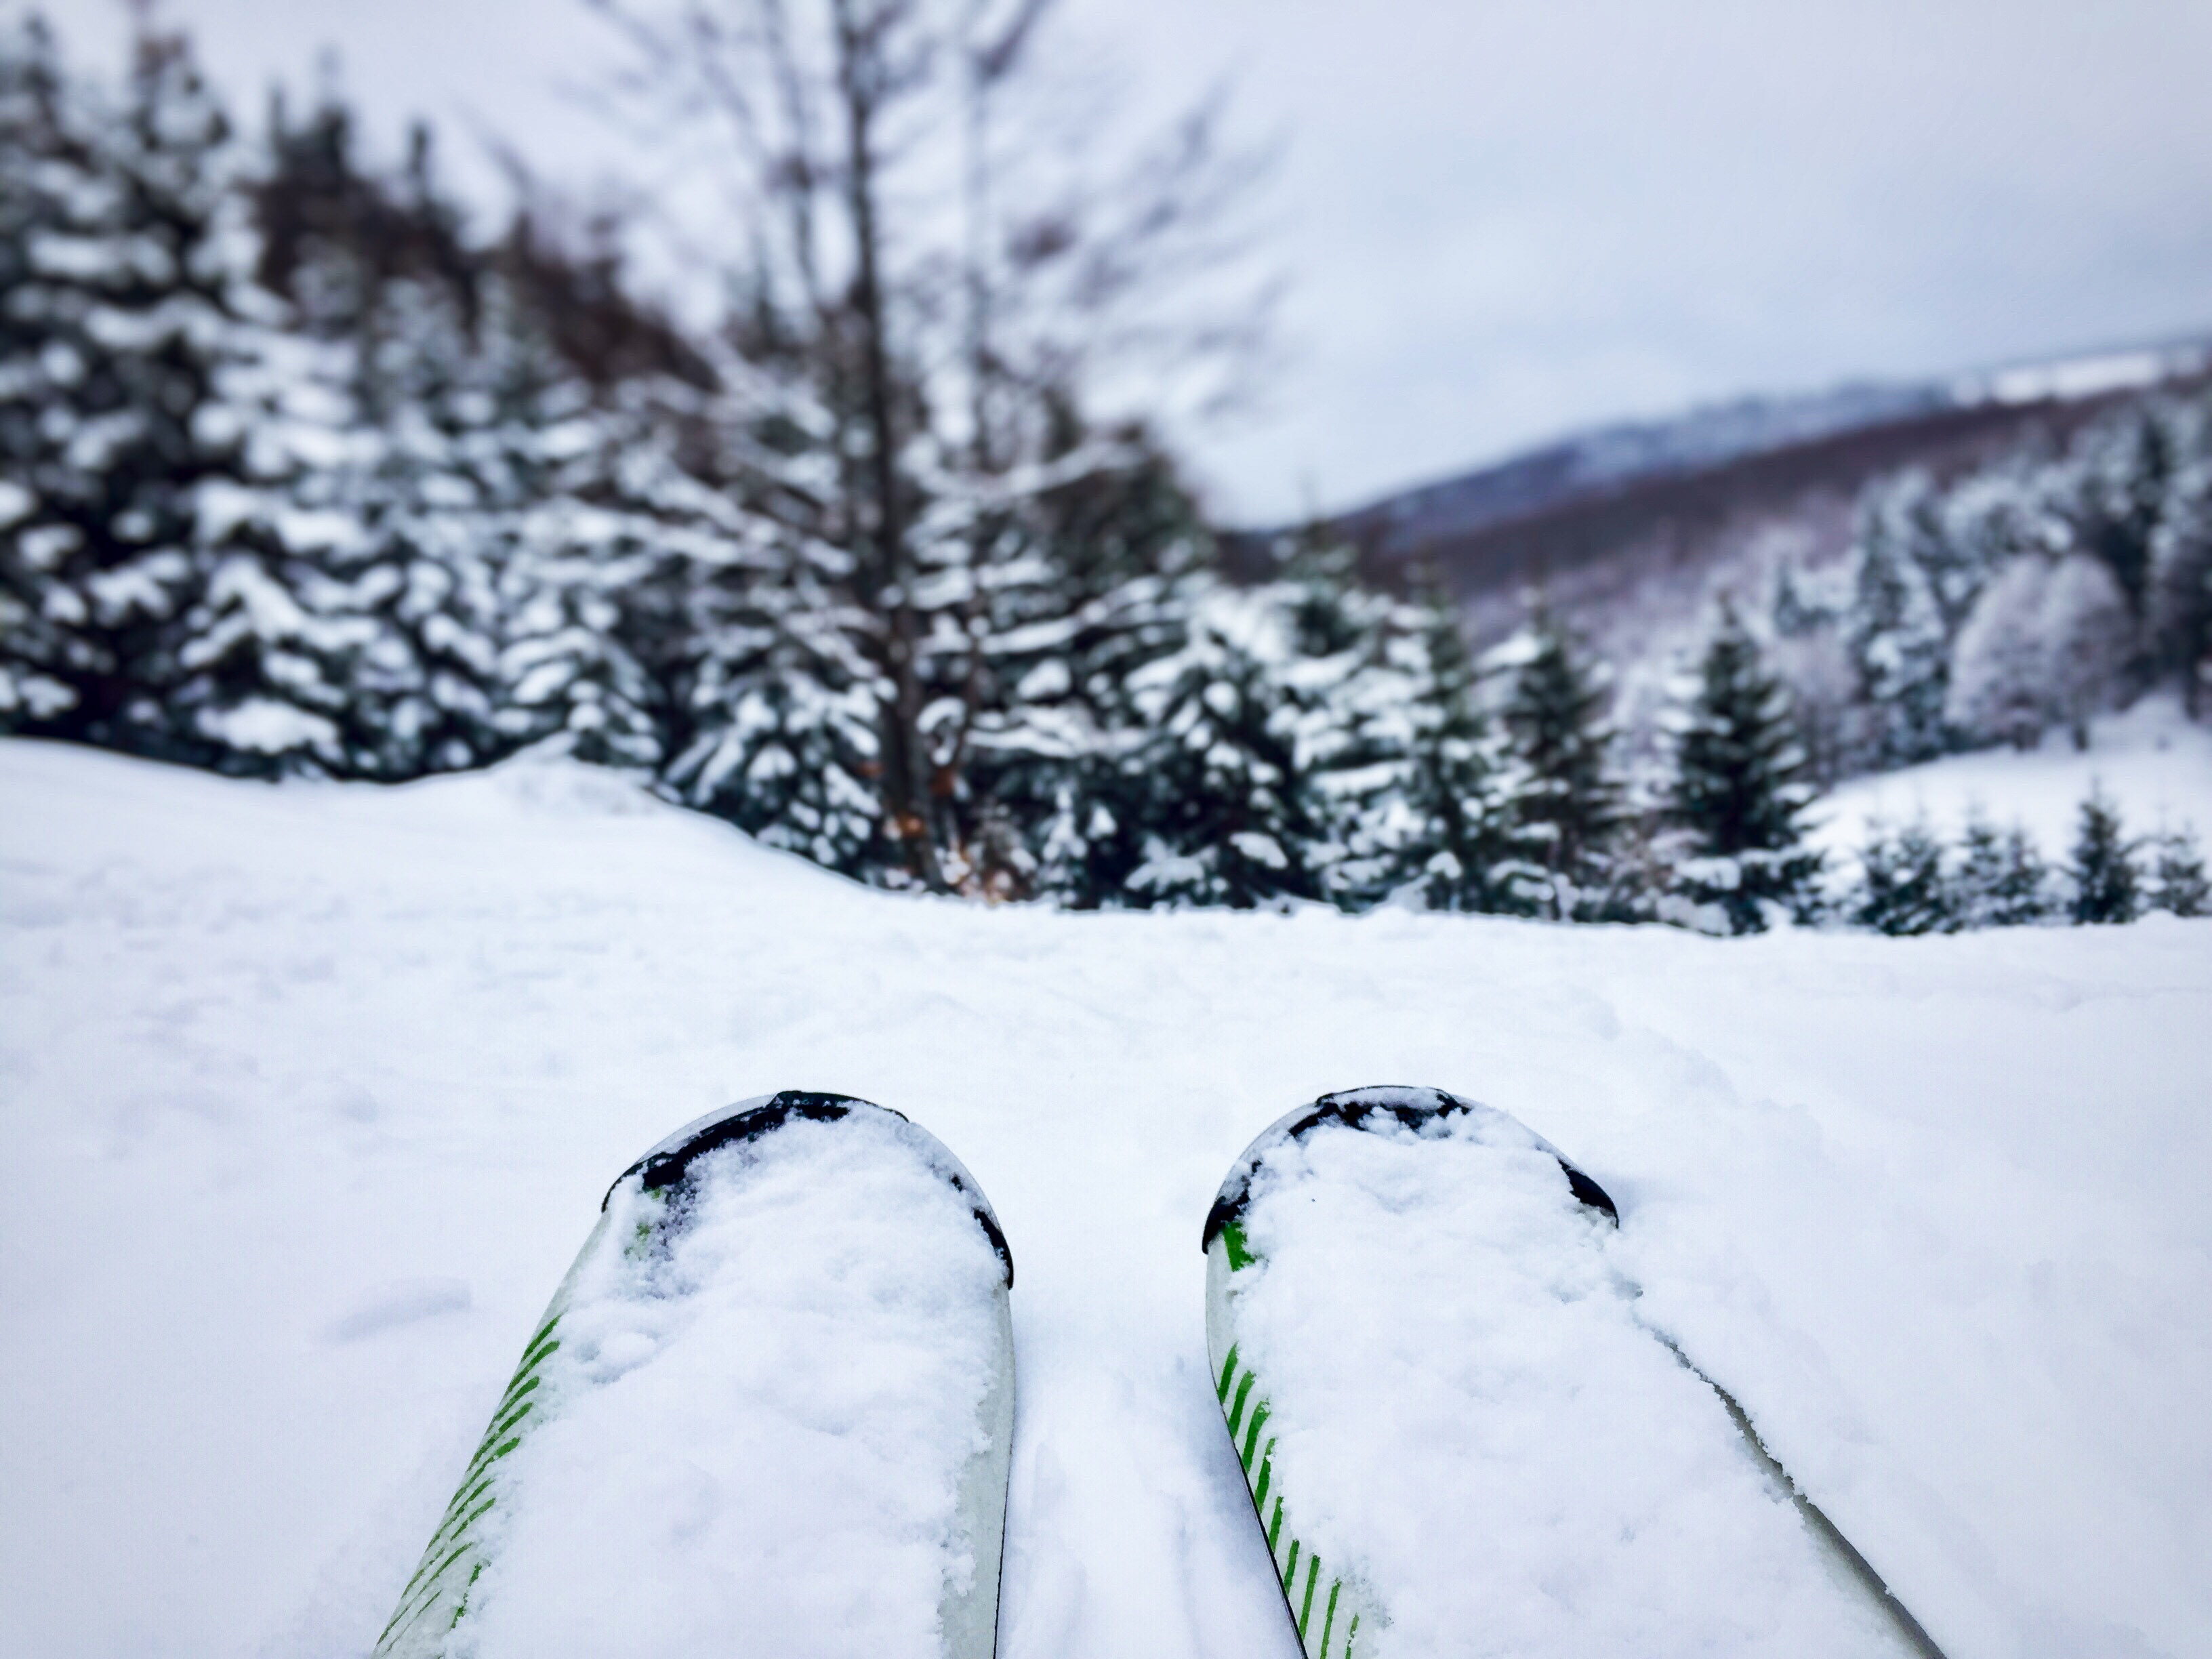 close-up-of-skis-with-snowy-evergreen-forest-ahead-Z6PTJF7.jpg